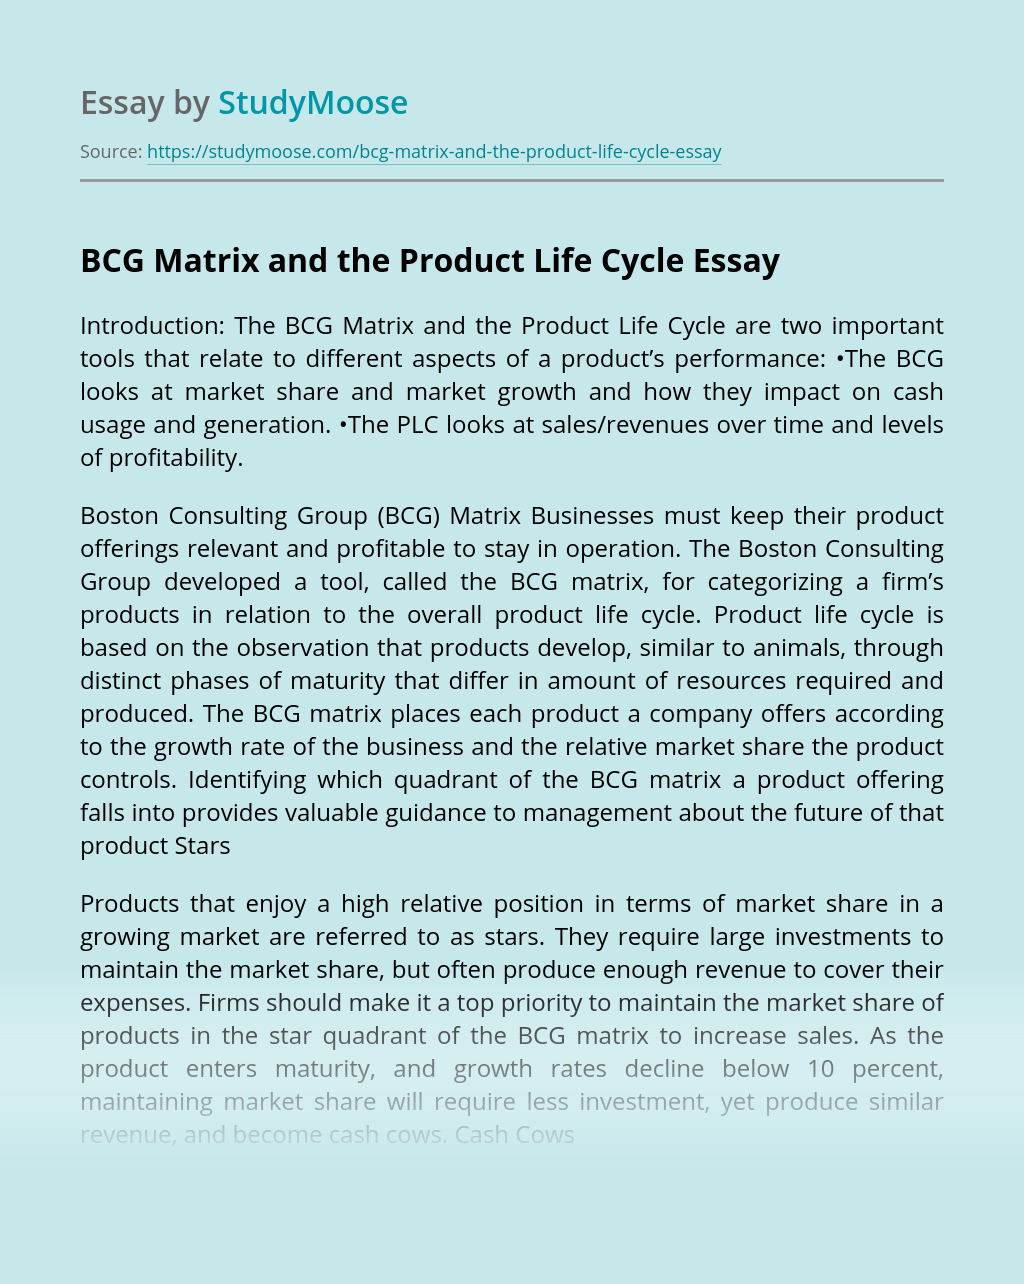 BCG Matrix and the Product Life Cycle